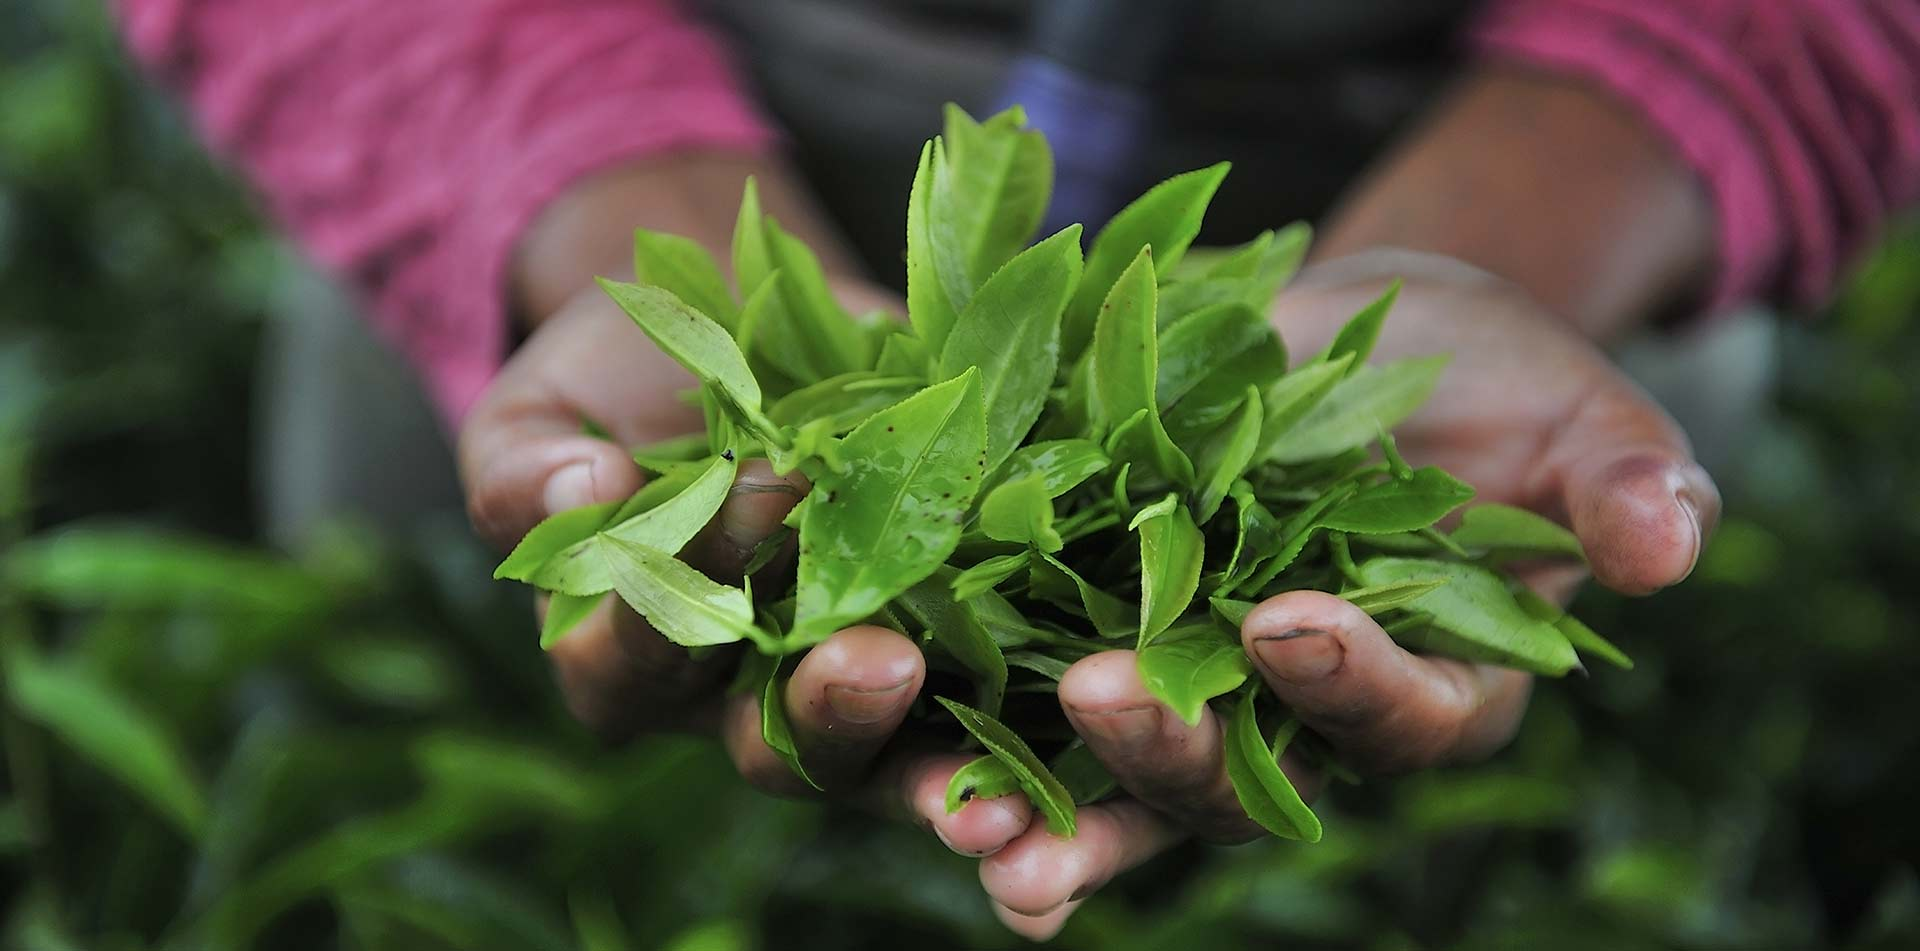 Tea Leaves in Woman's Hand, India